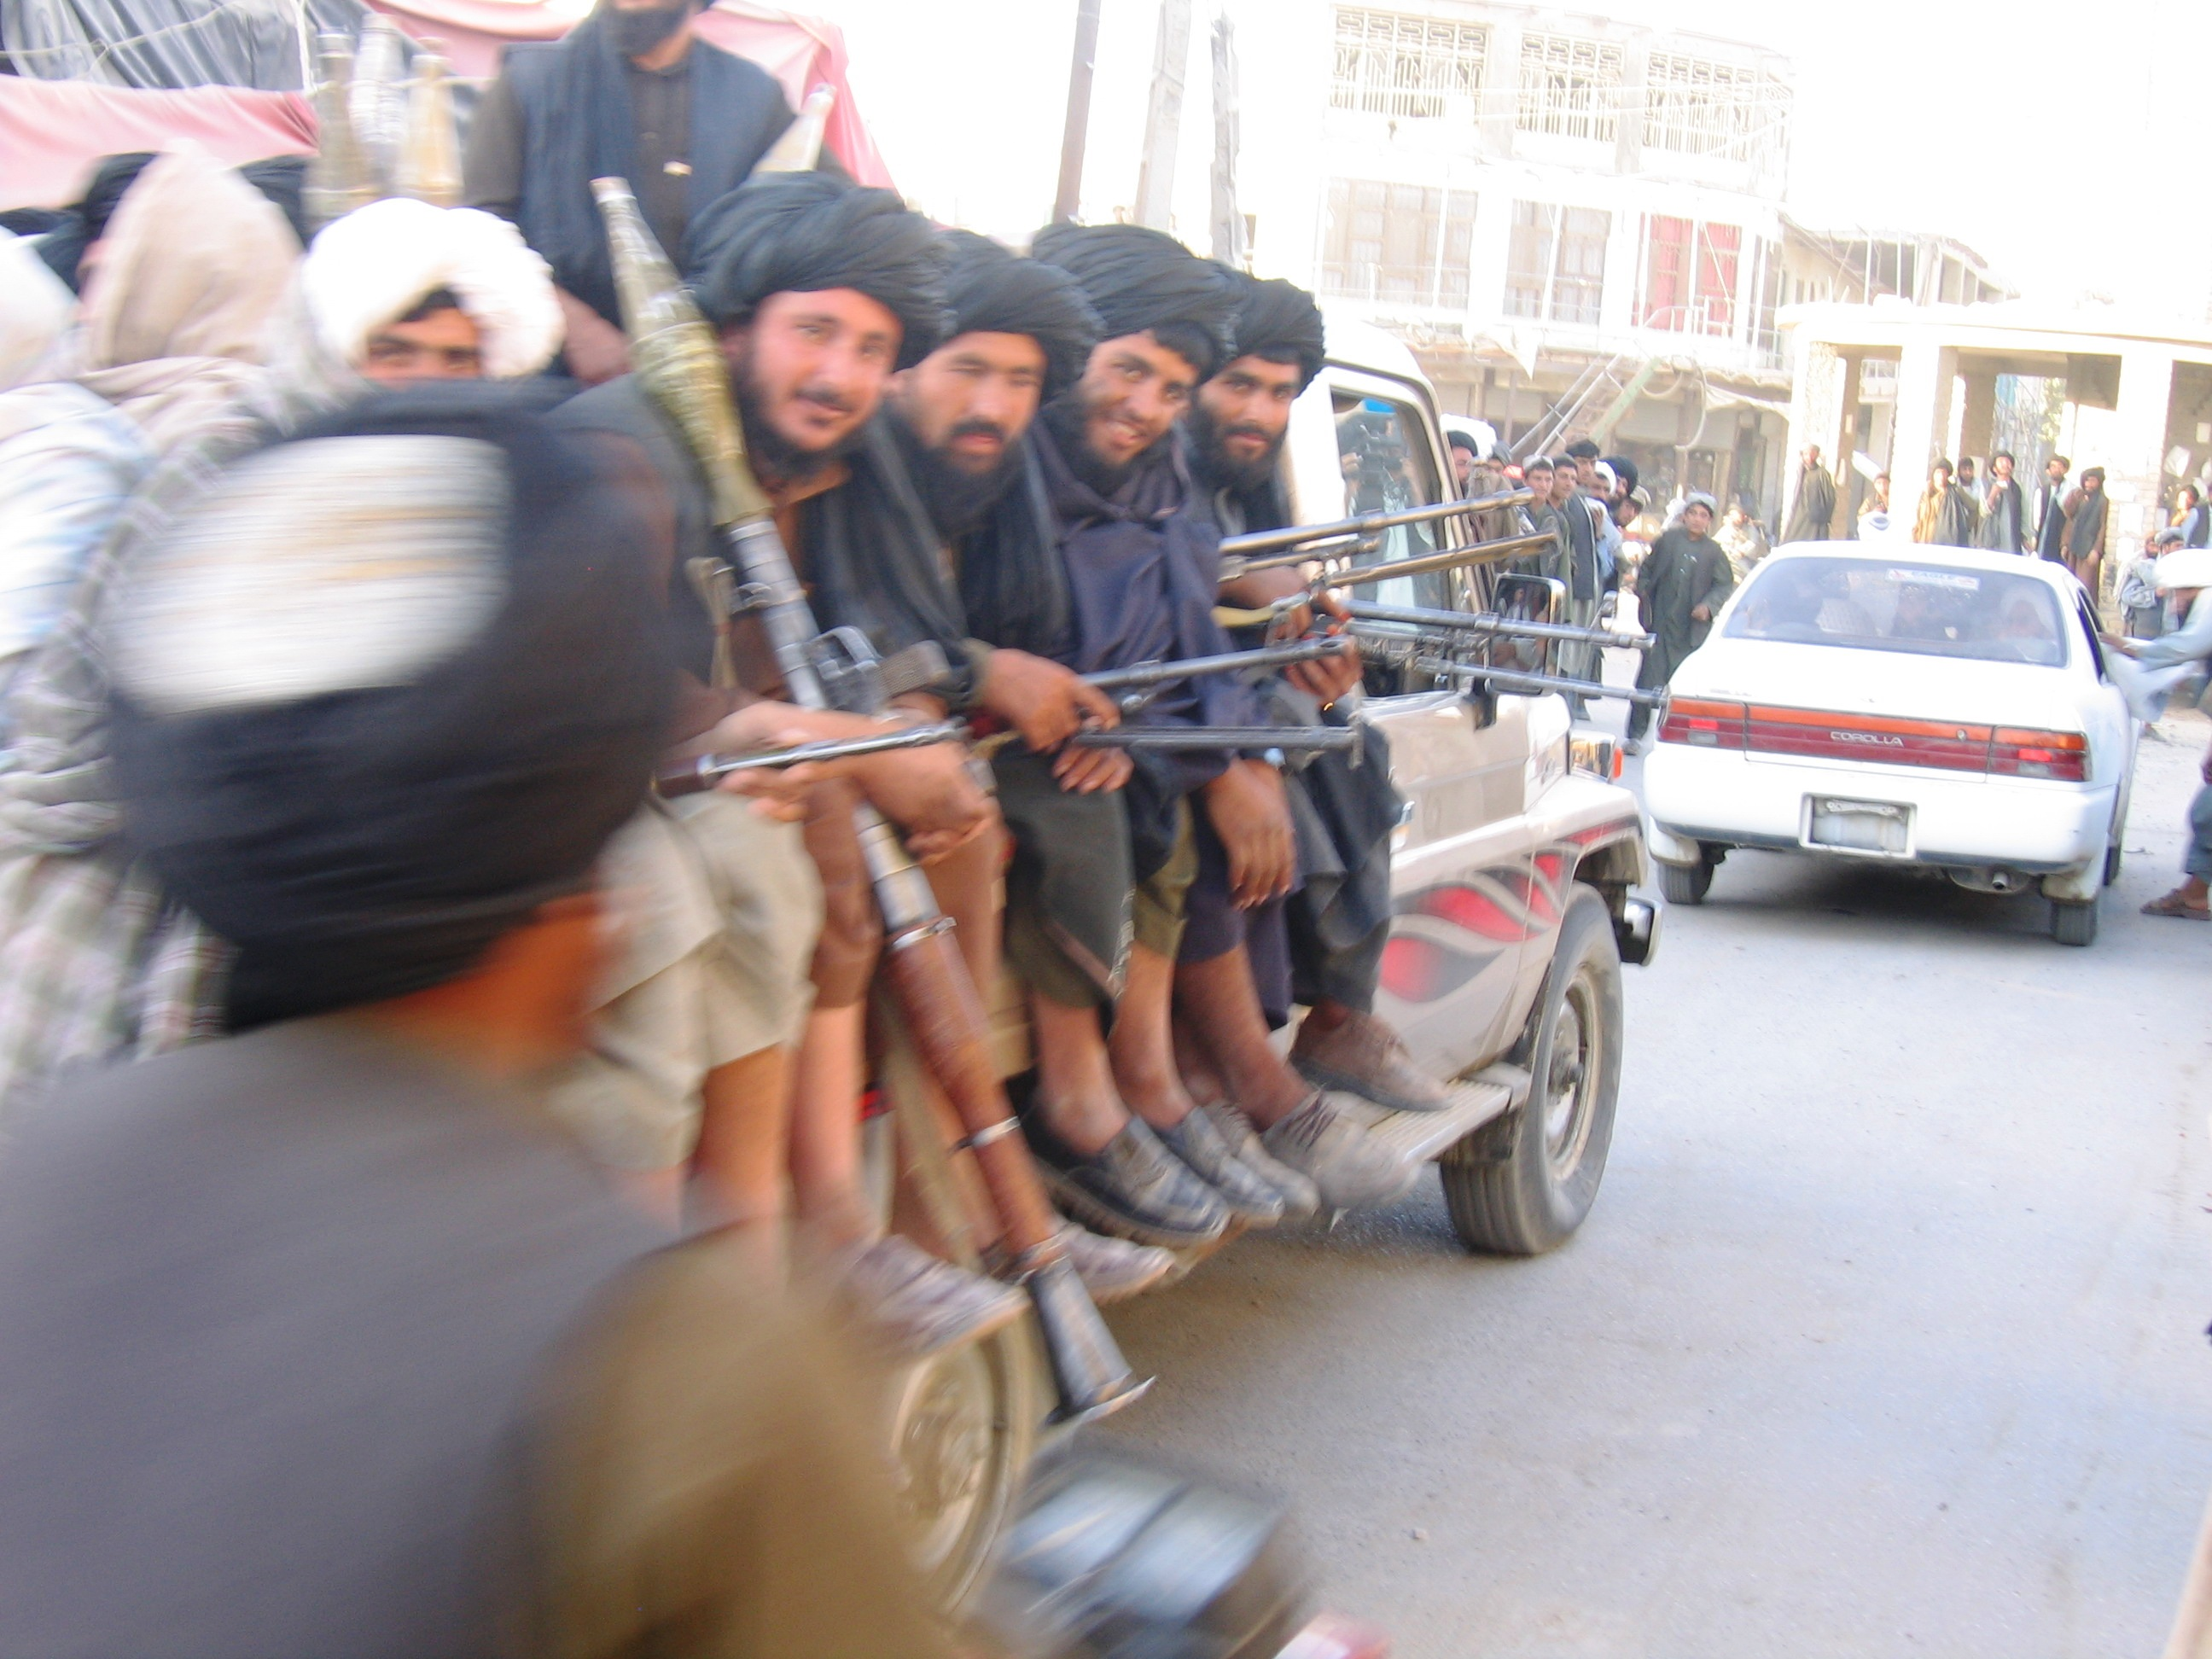 Thousands of Taliban insurgents have been killed but the movement is still strong